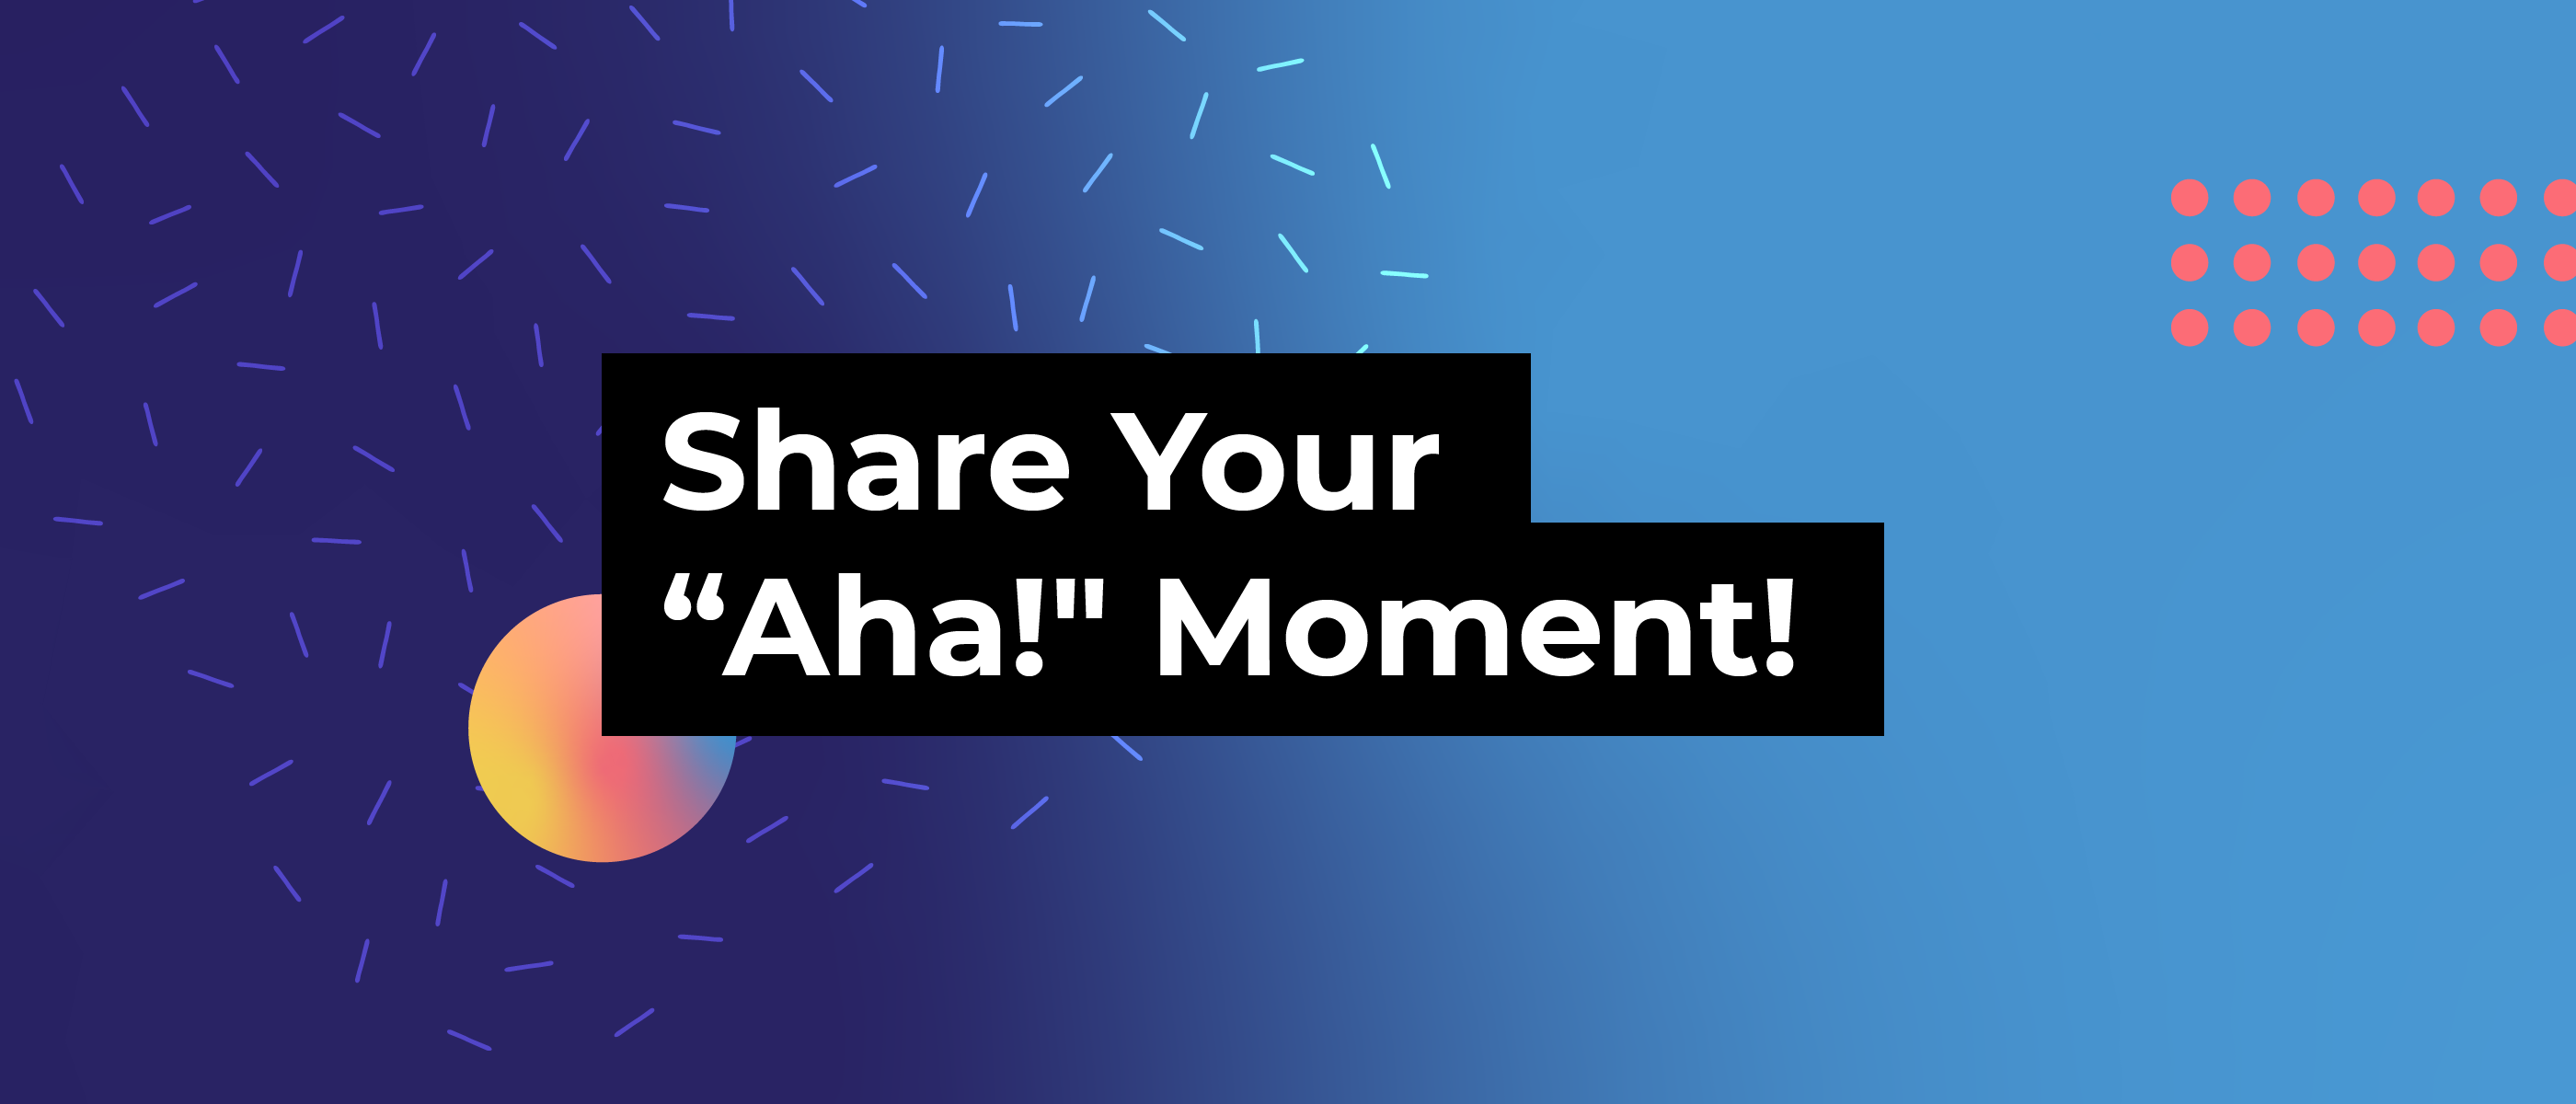 "Share Your ""Aha!"" Moment!"